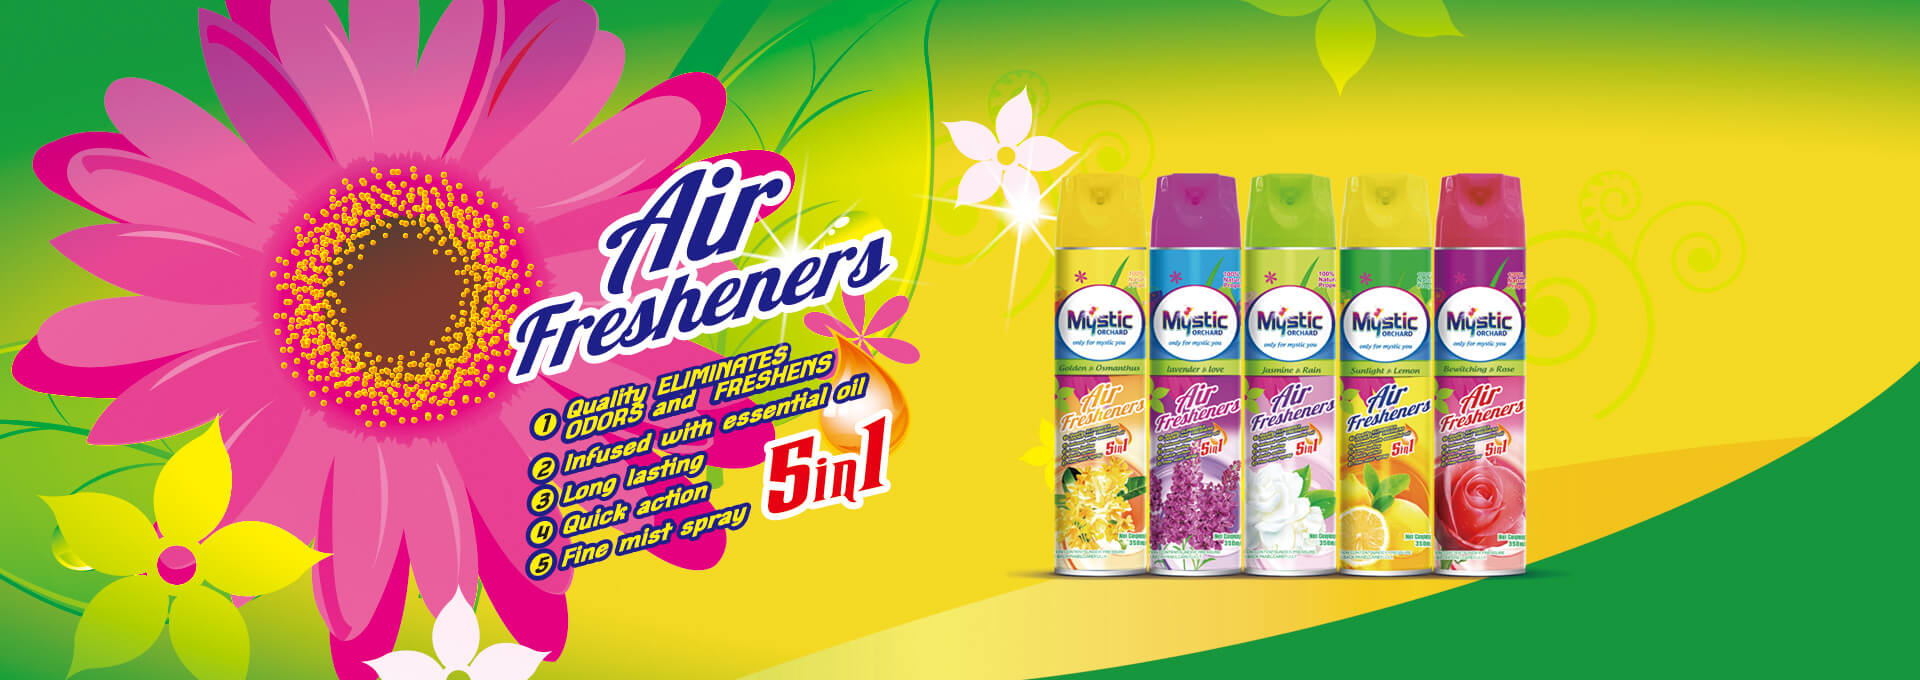 Air Fresheners Sunlight Lemon 350ml Mystic